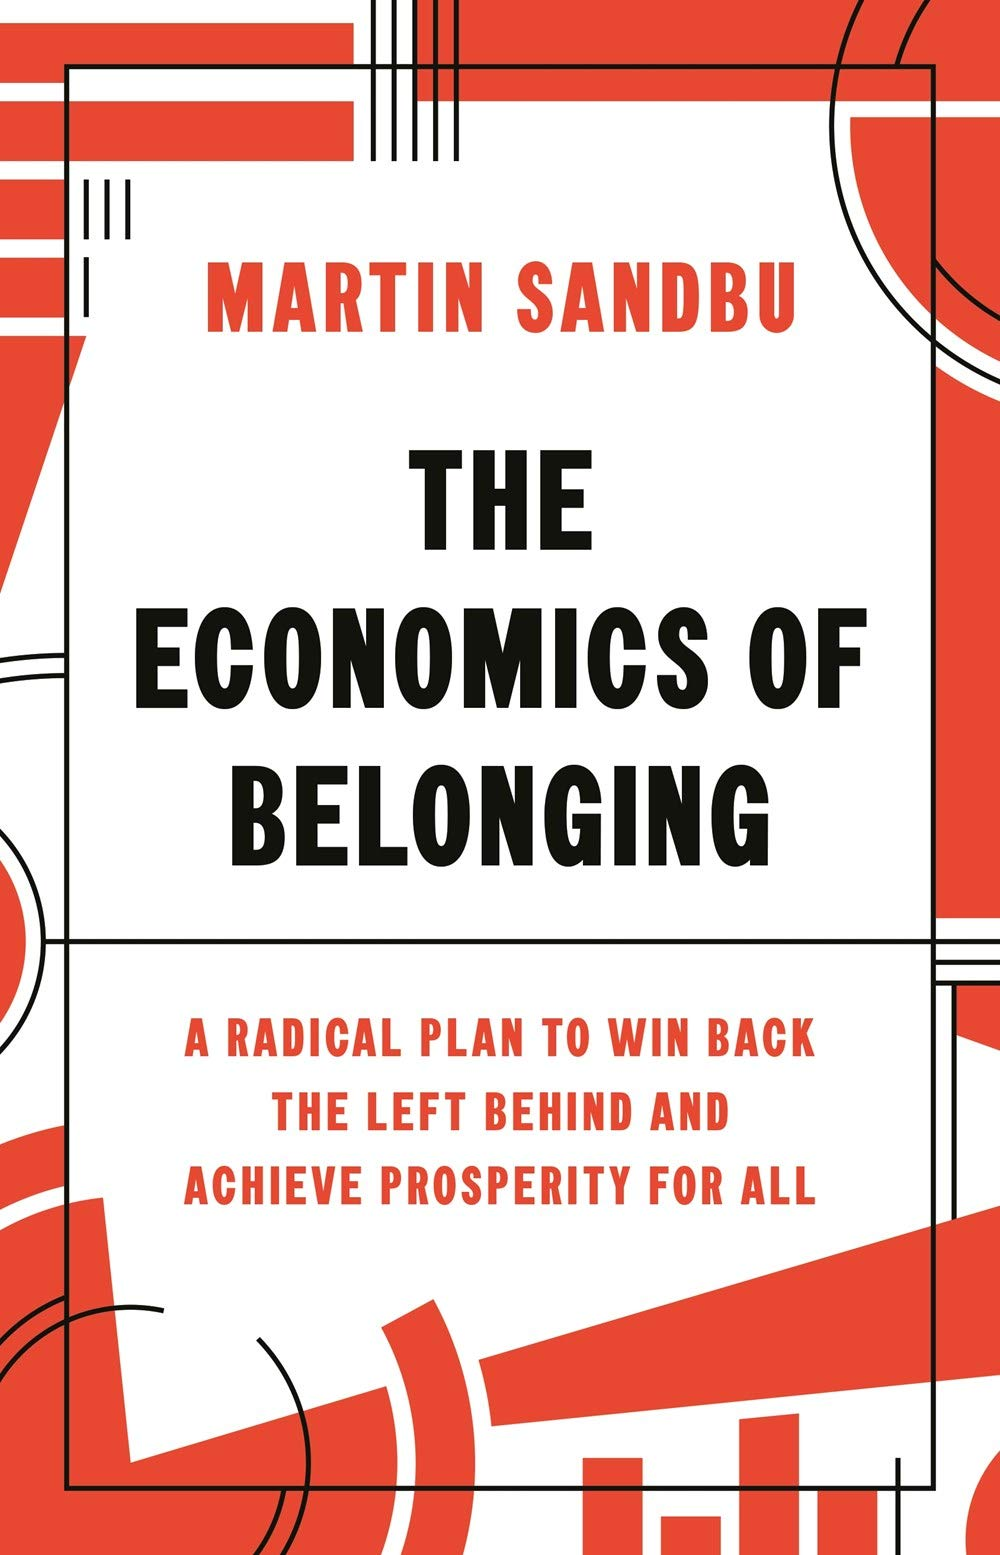 The Economics of Belonging: A Radical Plan to Win Back the Left Behind and  Achieve Prosperity for All: Sandbu, Martin: 9780691204529: Amazon.com: Books